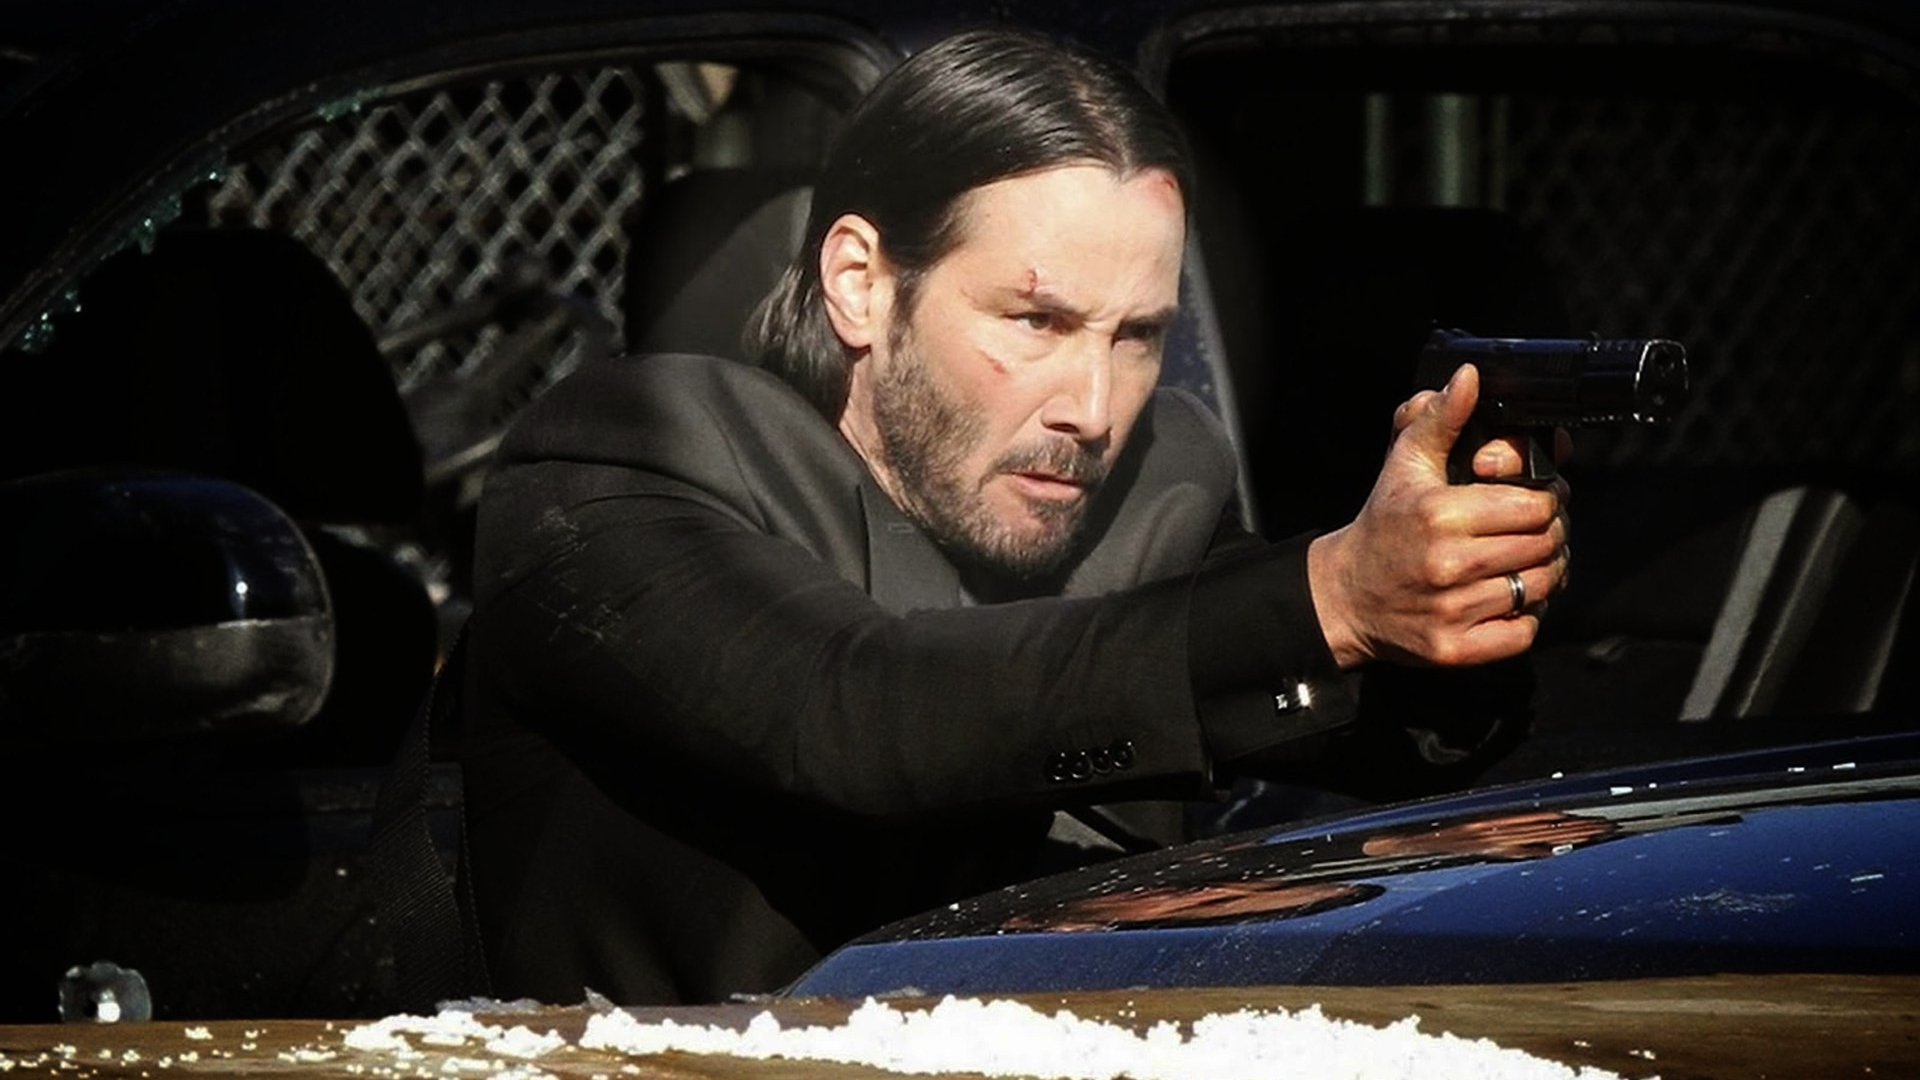 John Wick Wallpapers, Pictures, Images